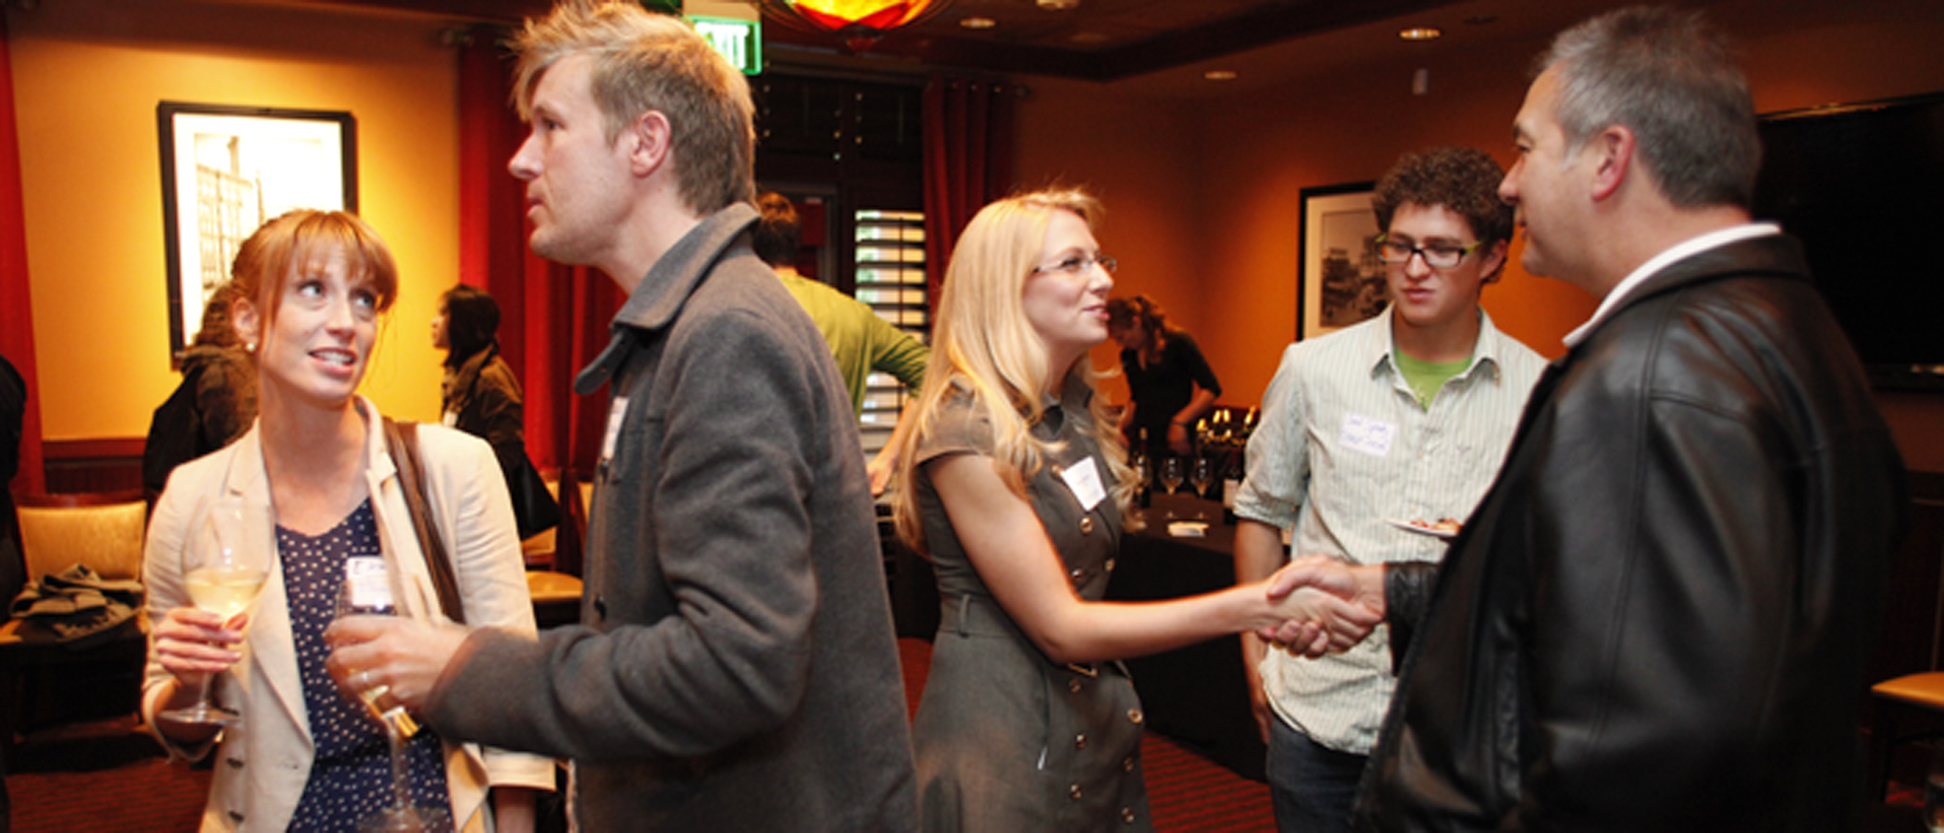 bellevue seattle networking events chamber business professional